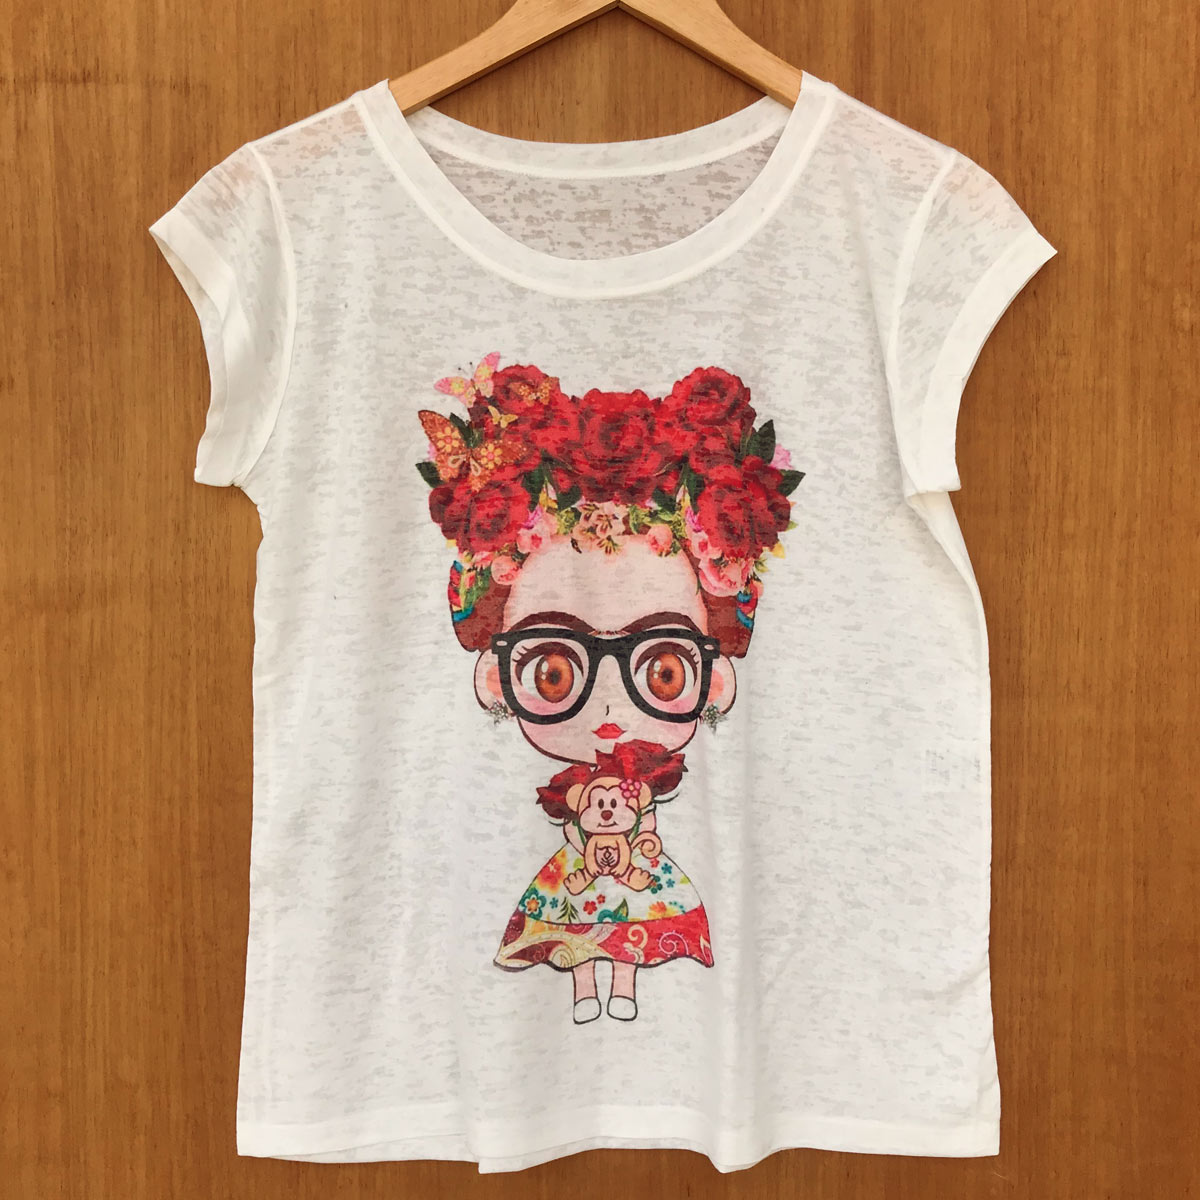 T-SHIRT CAMISETA BABY LOOK FRIDA KAHLO